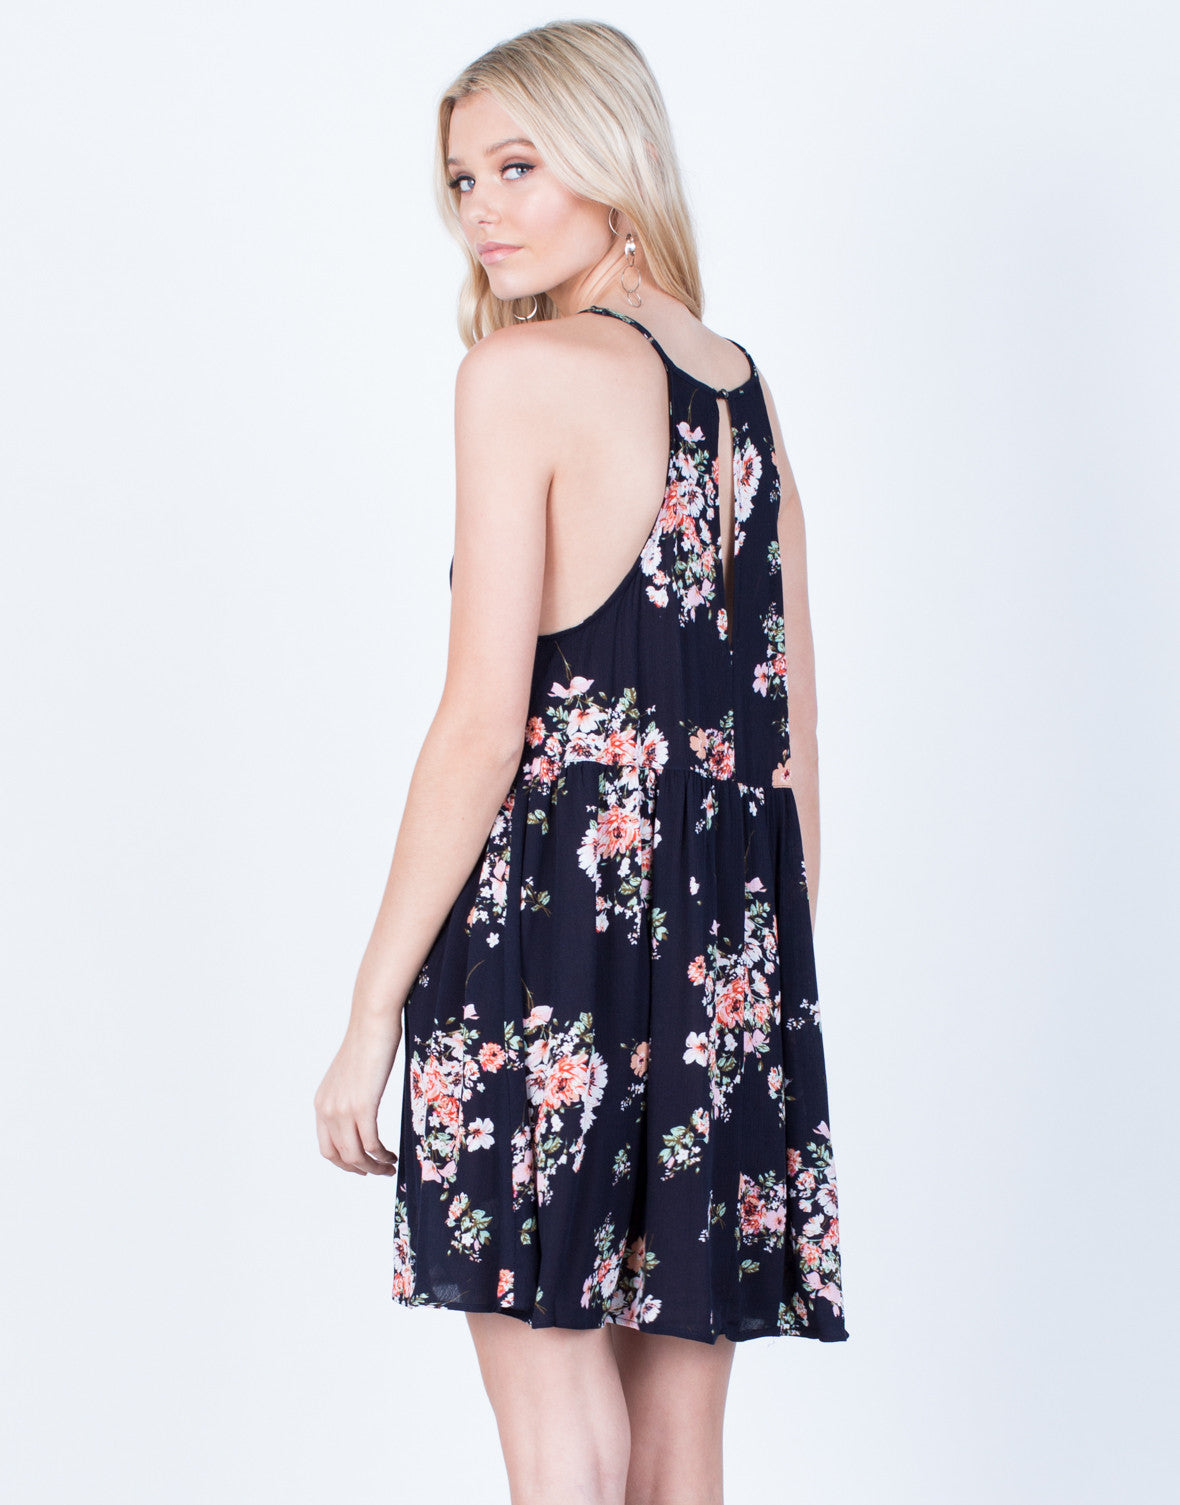 Back View of Pretty Floral Printed Dress